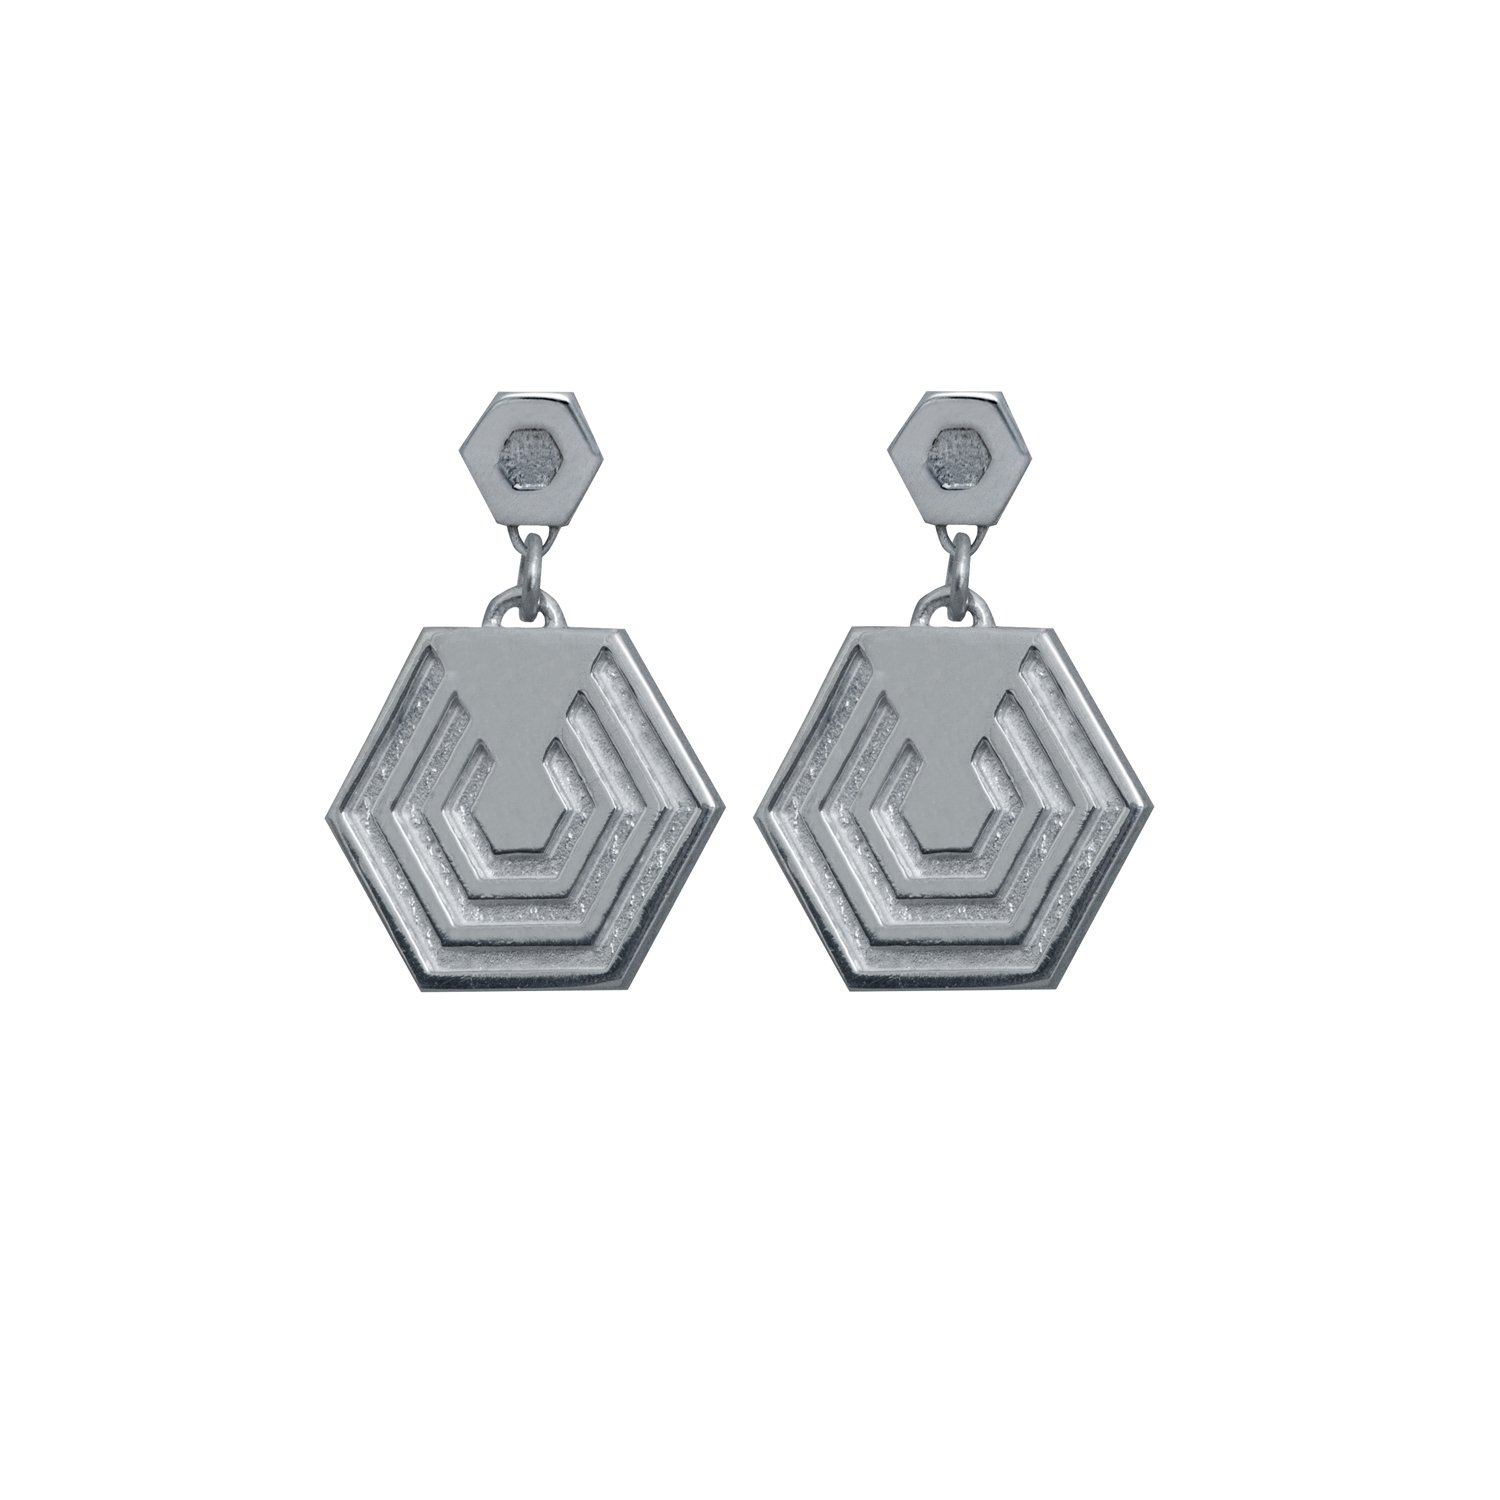 Hexagon Drop Earrings, Polished Sterling Silver, Edge Only.